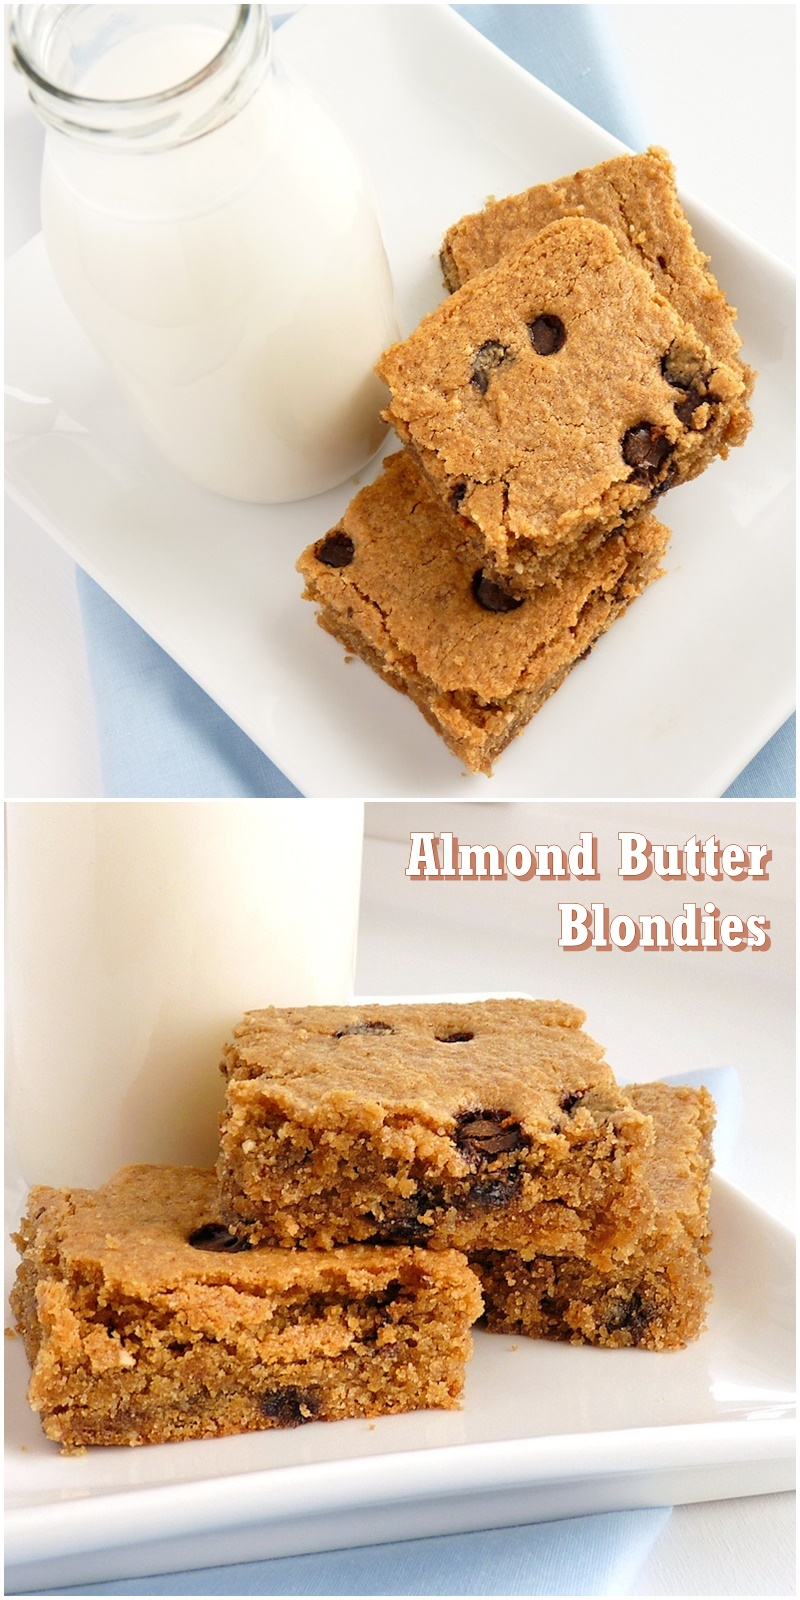 Almond Butter Blondies Recipe - a definitely touchdown for Team Blondie! Unbelievably gluten-free and vegan.